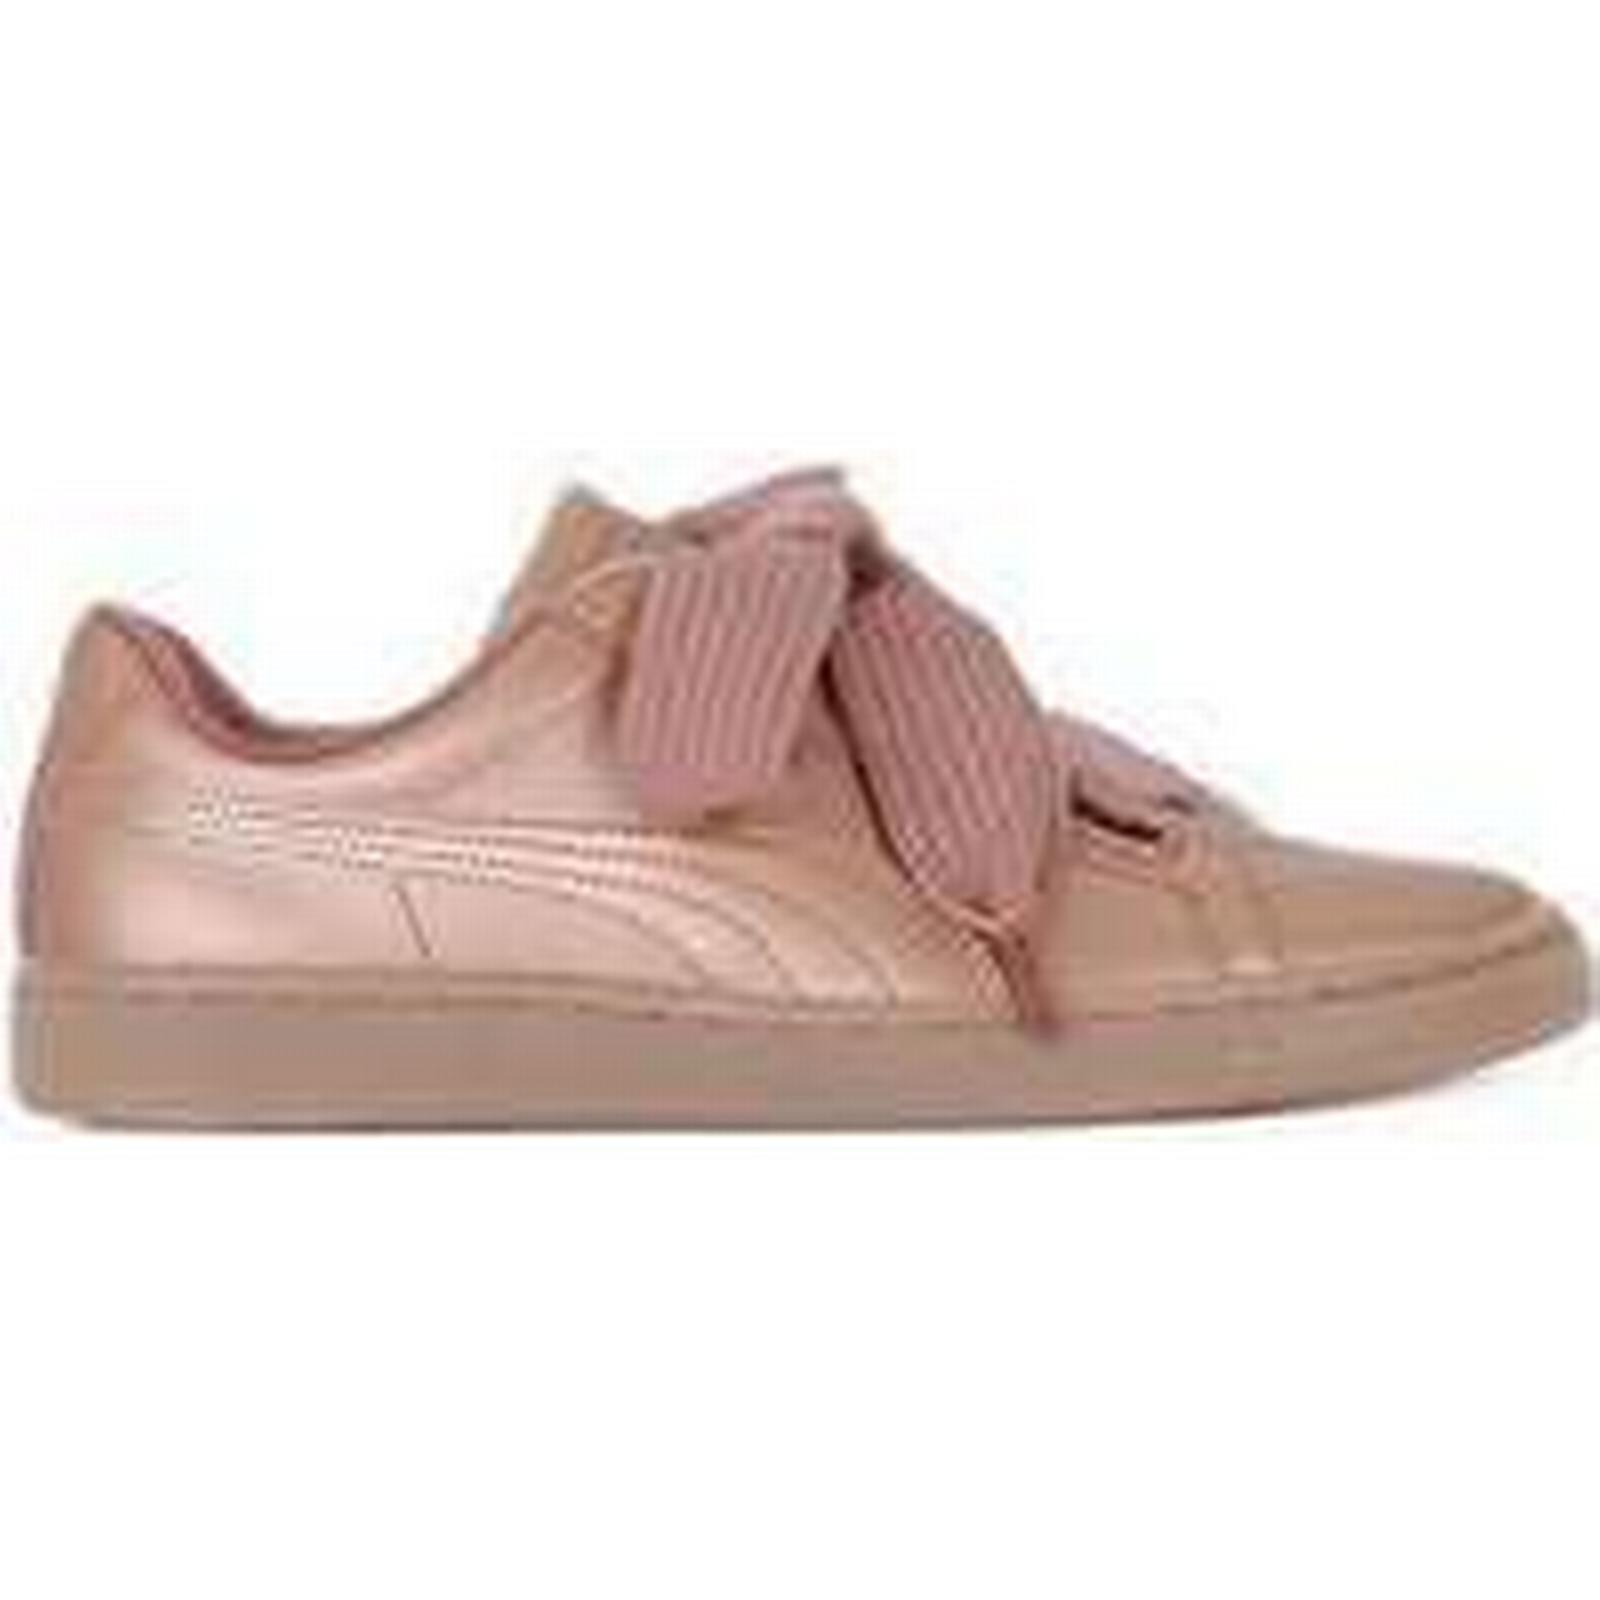 Spartoo.co.uk Puma Basket Heart in Copper women's Shoes (Trainers) in Heart Pink cff6be